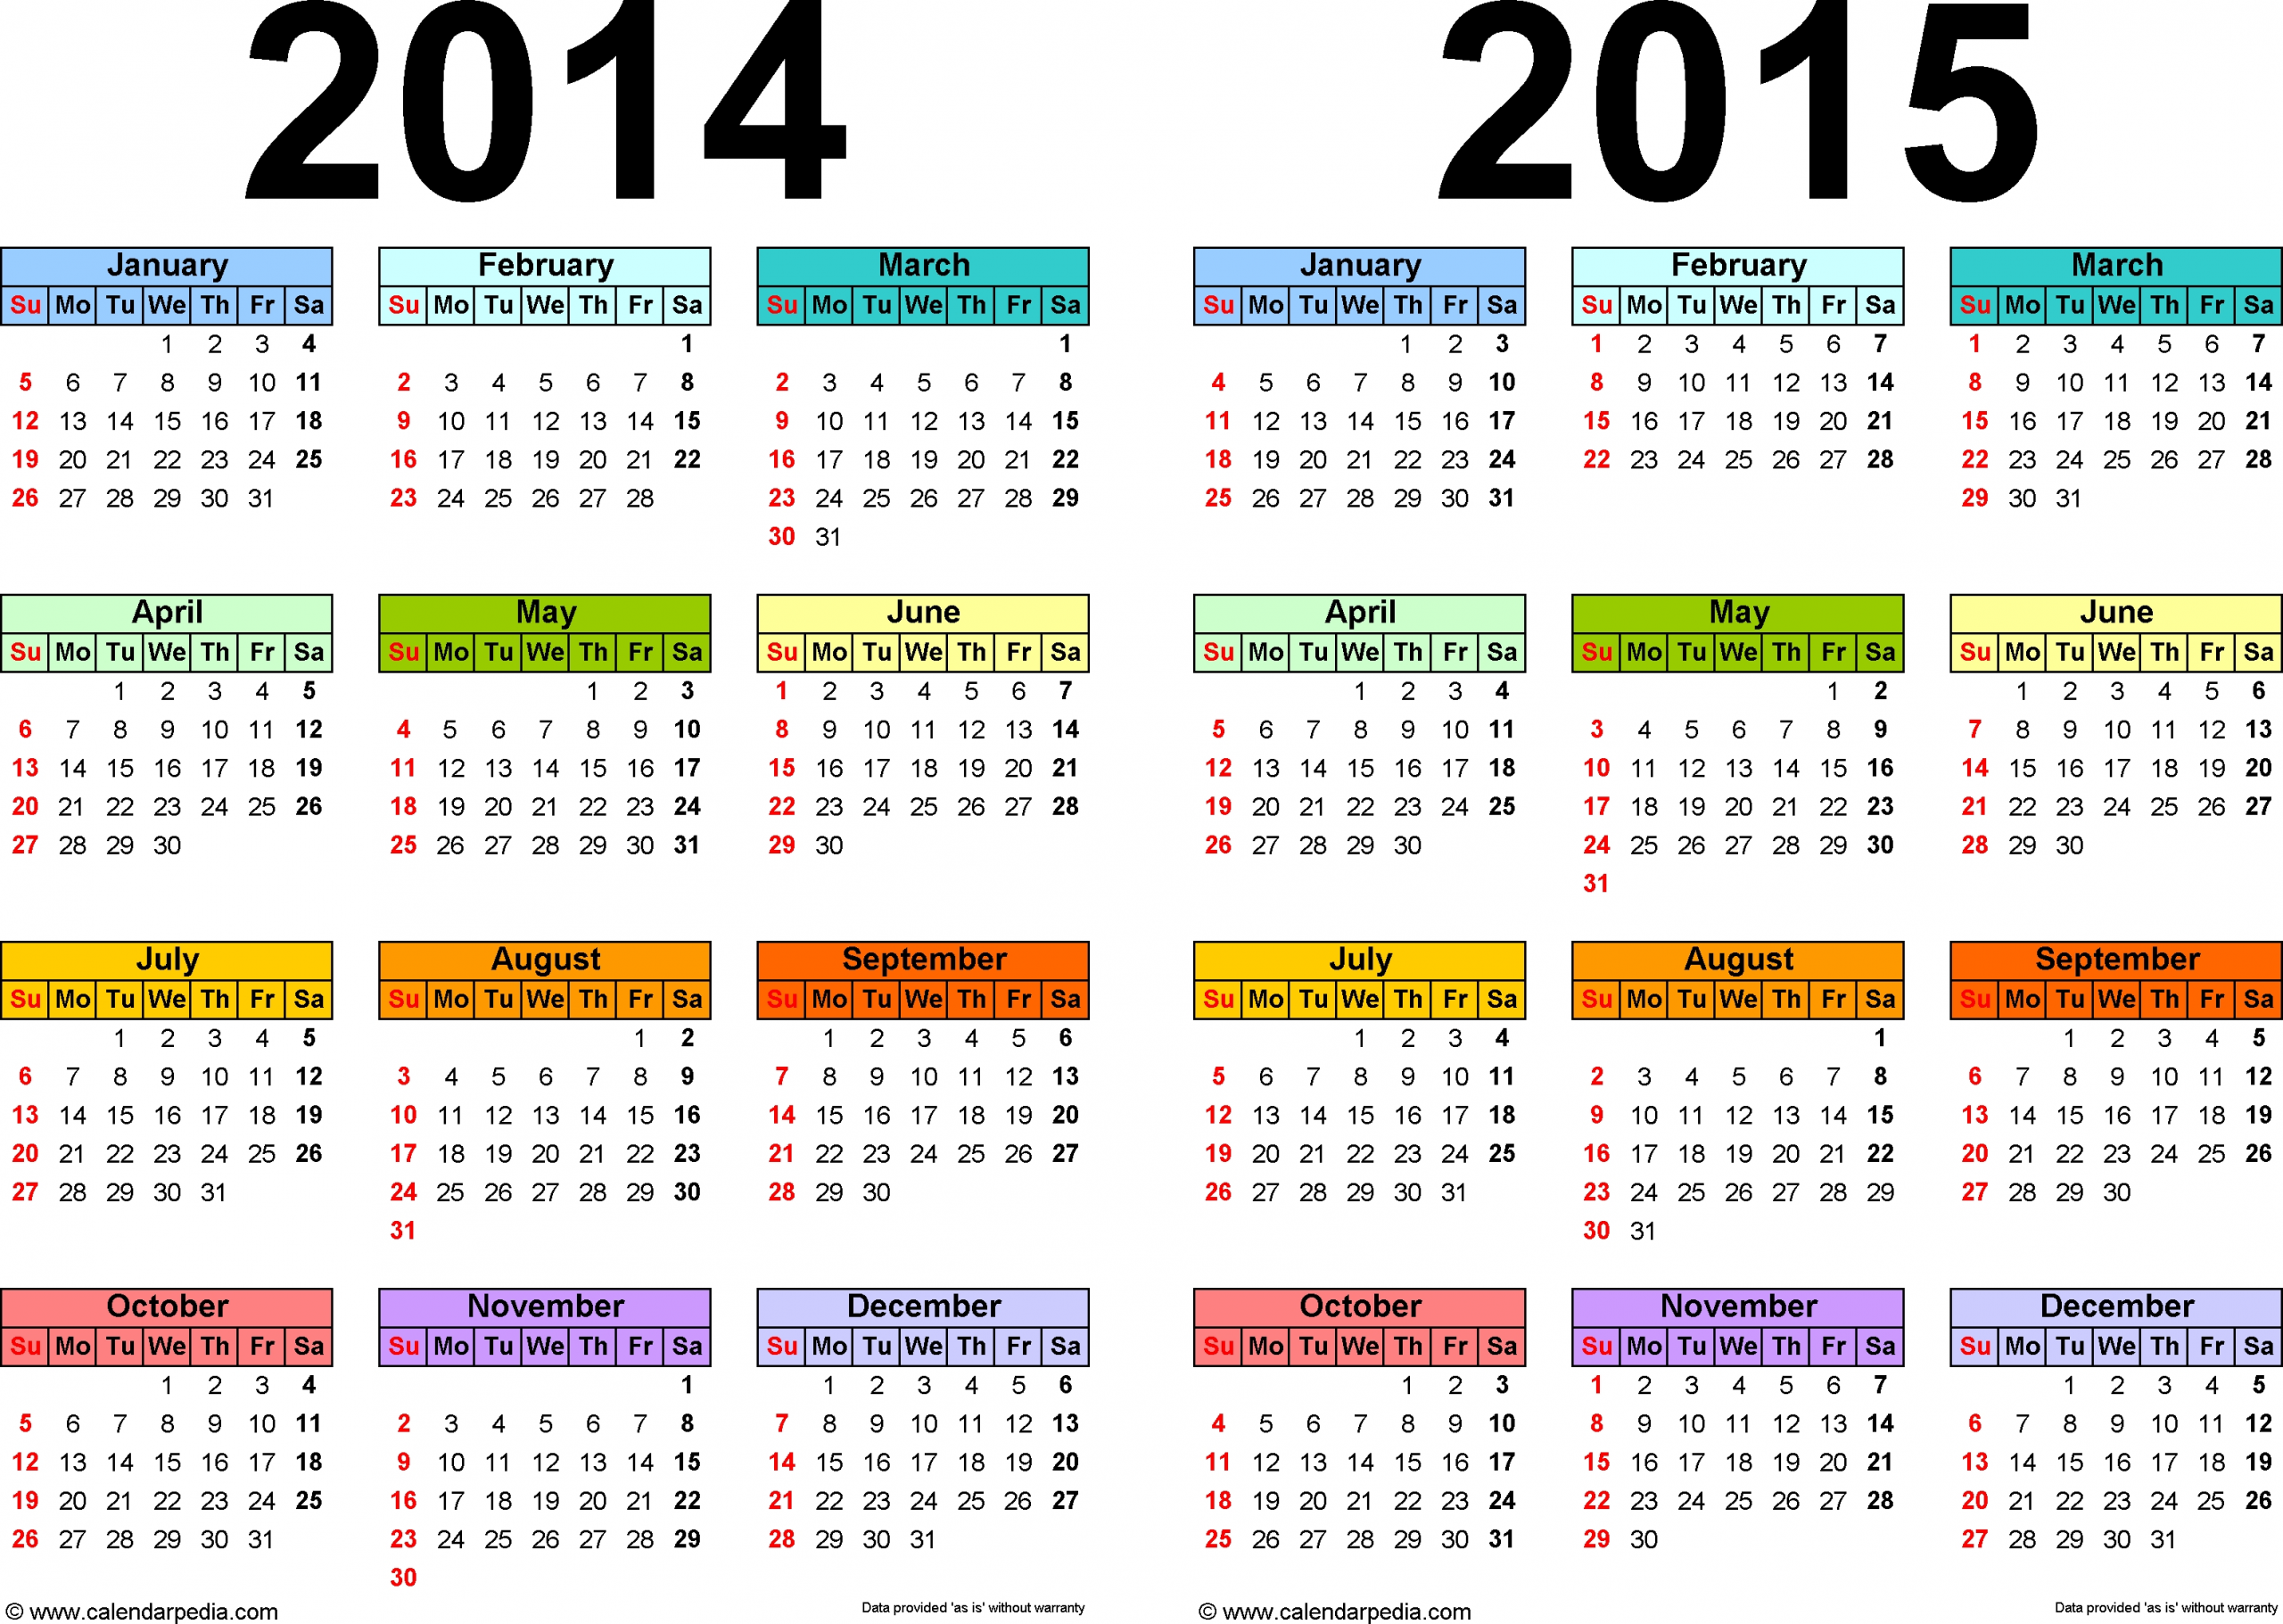 2014 Yearly Calendar | Calendar 2014 2015 Printable One Page | Printable Calendar Template with regard to Sample One Page Multi Year Calendars Image